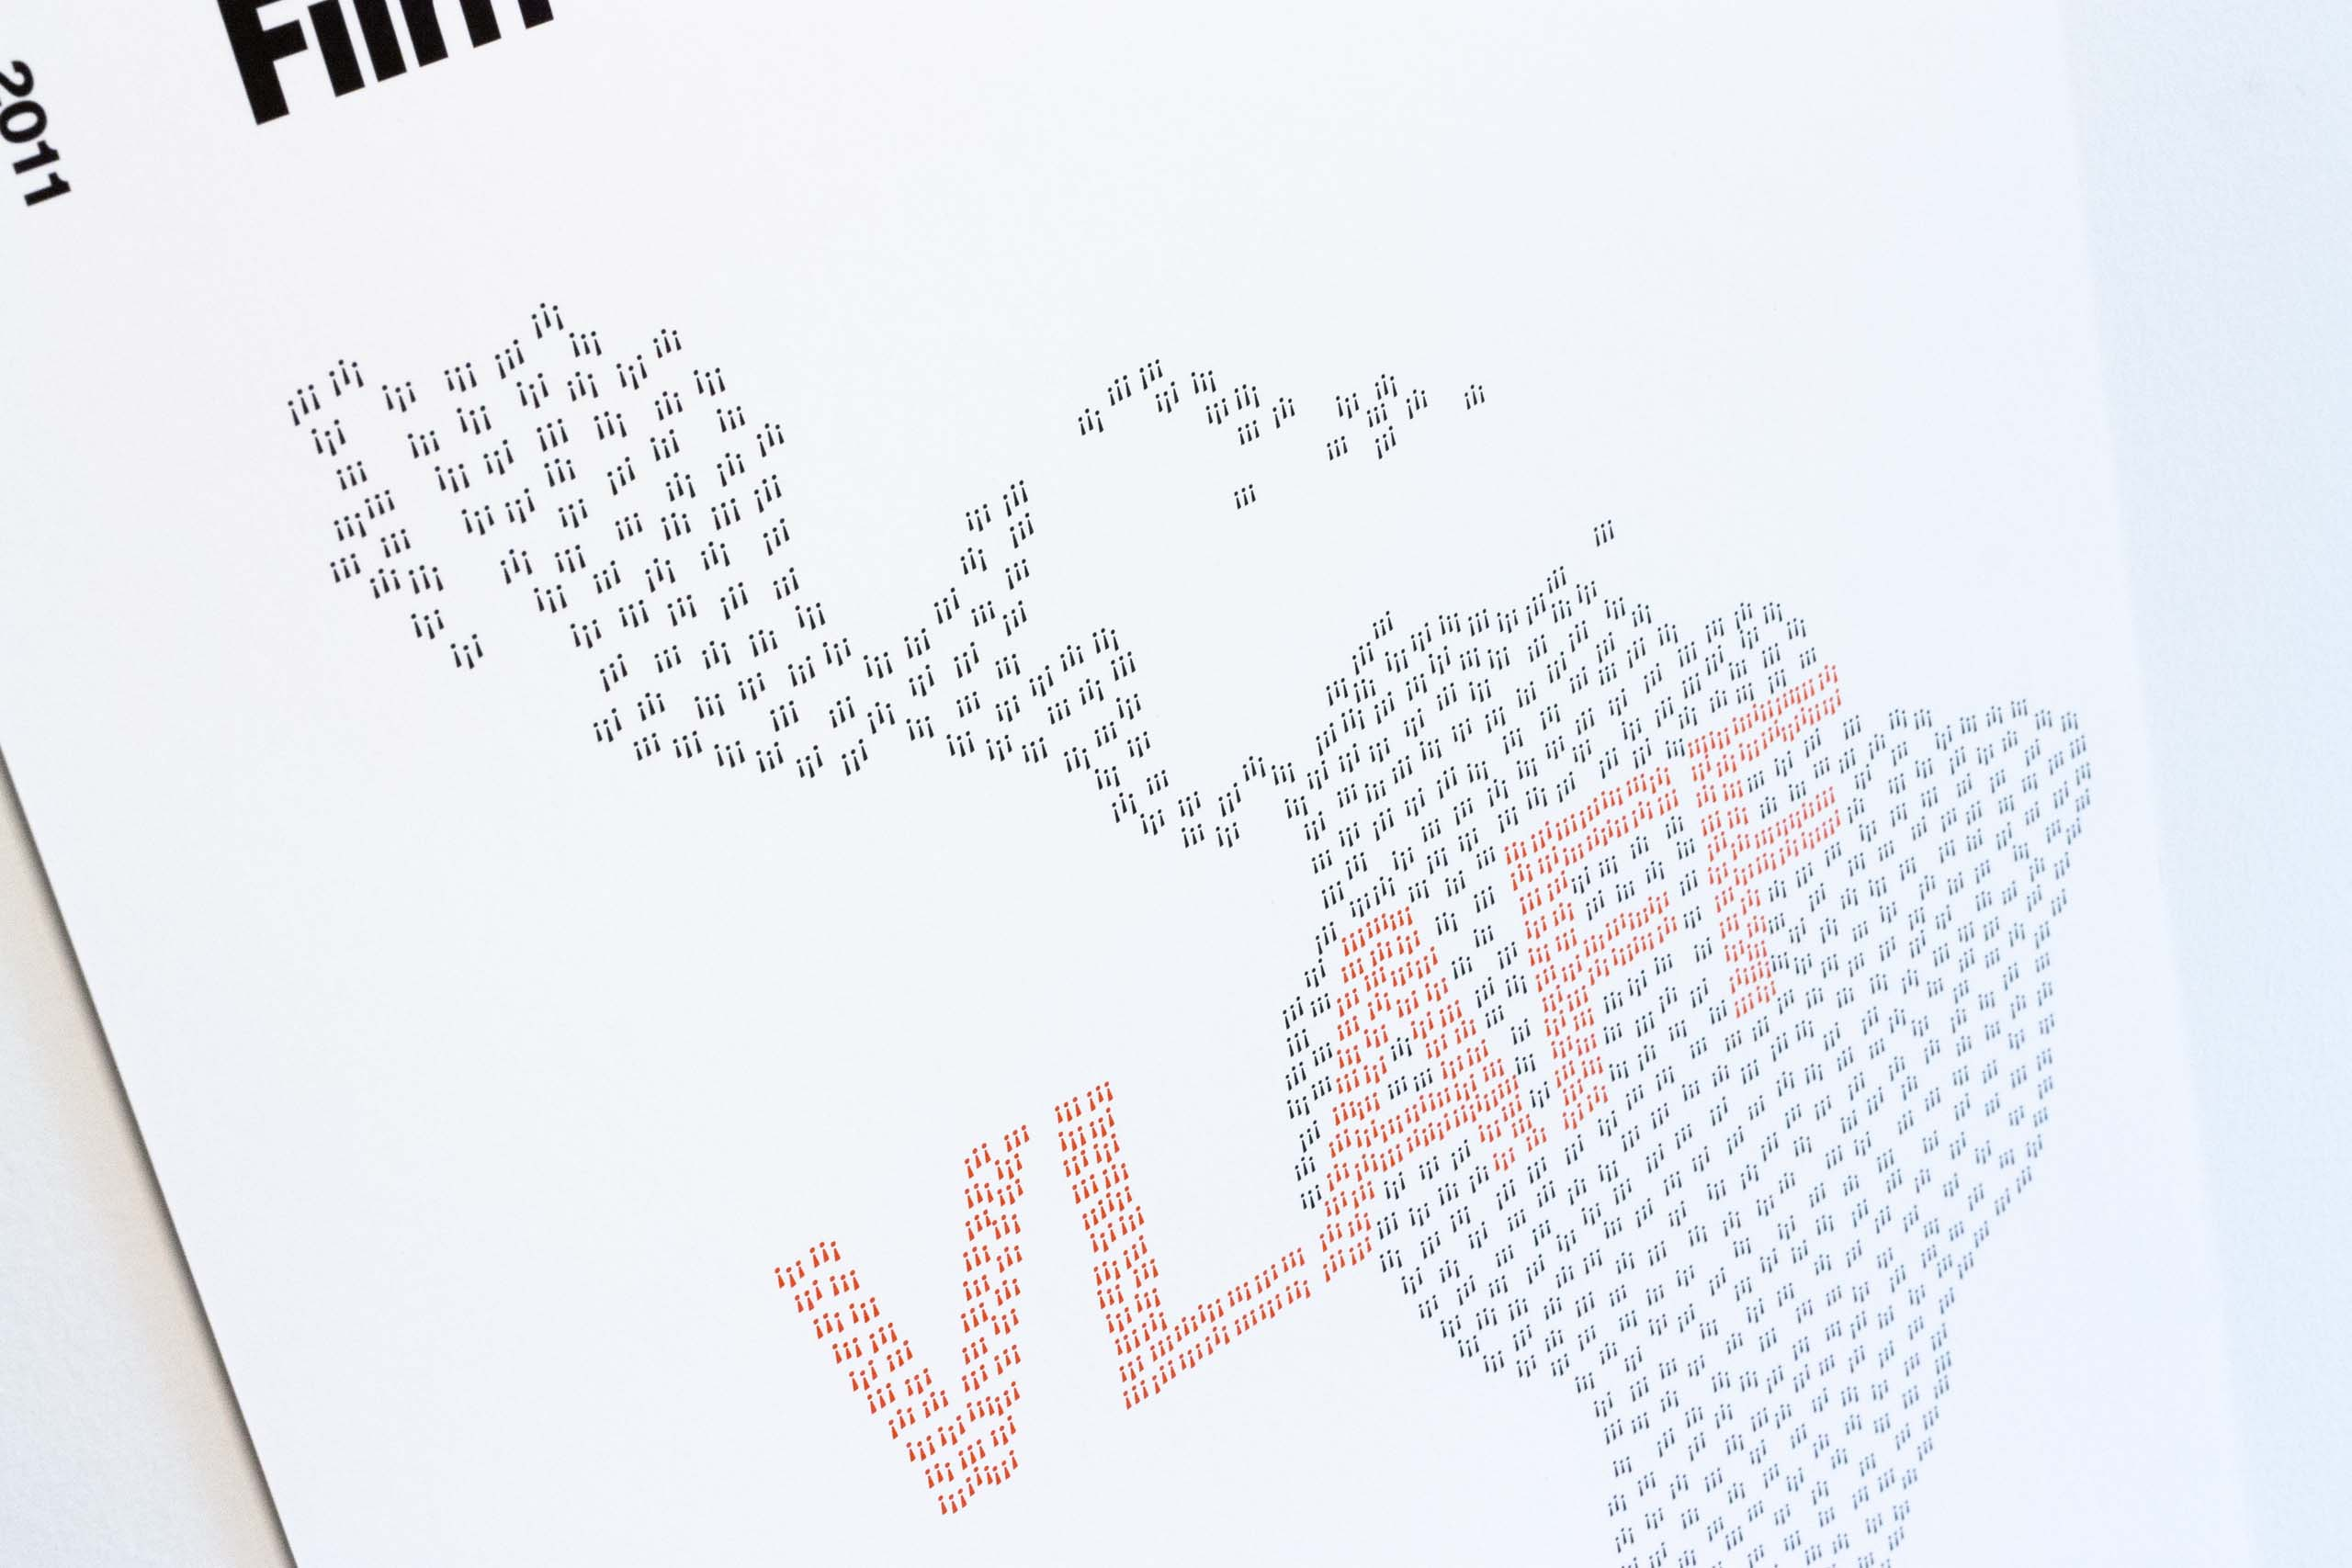 Close up of the poster showing exclamation marks spelling out VLAFF word — by Yagnyuk.